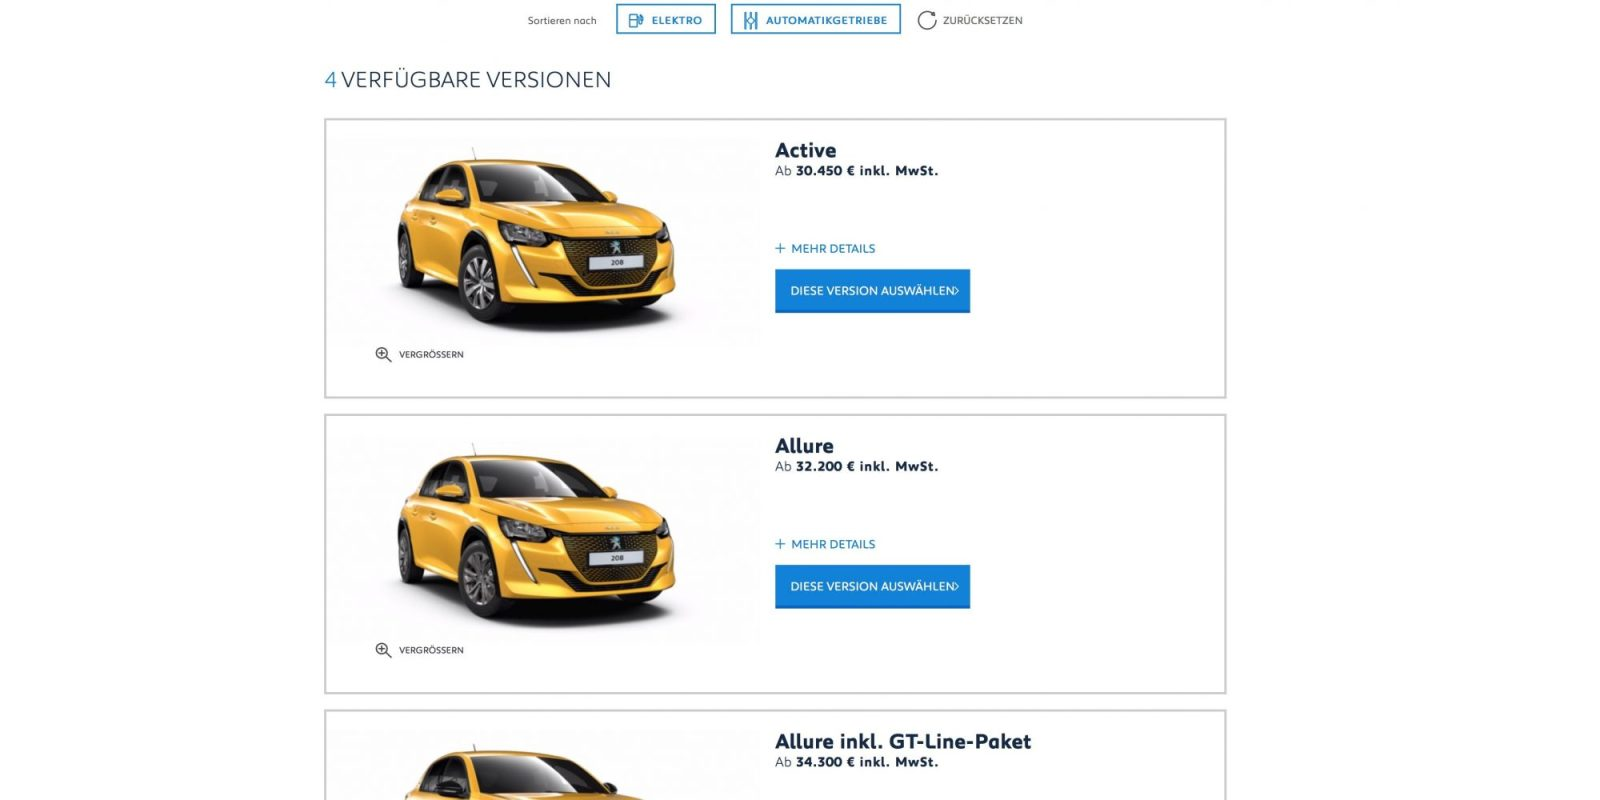 Peugeot e-208 configurator opens in Germany, €30,450 base price (plus €4k incentive)